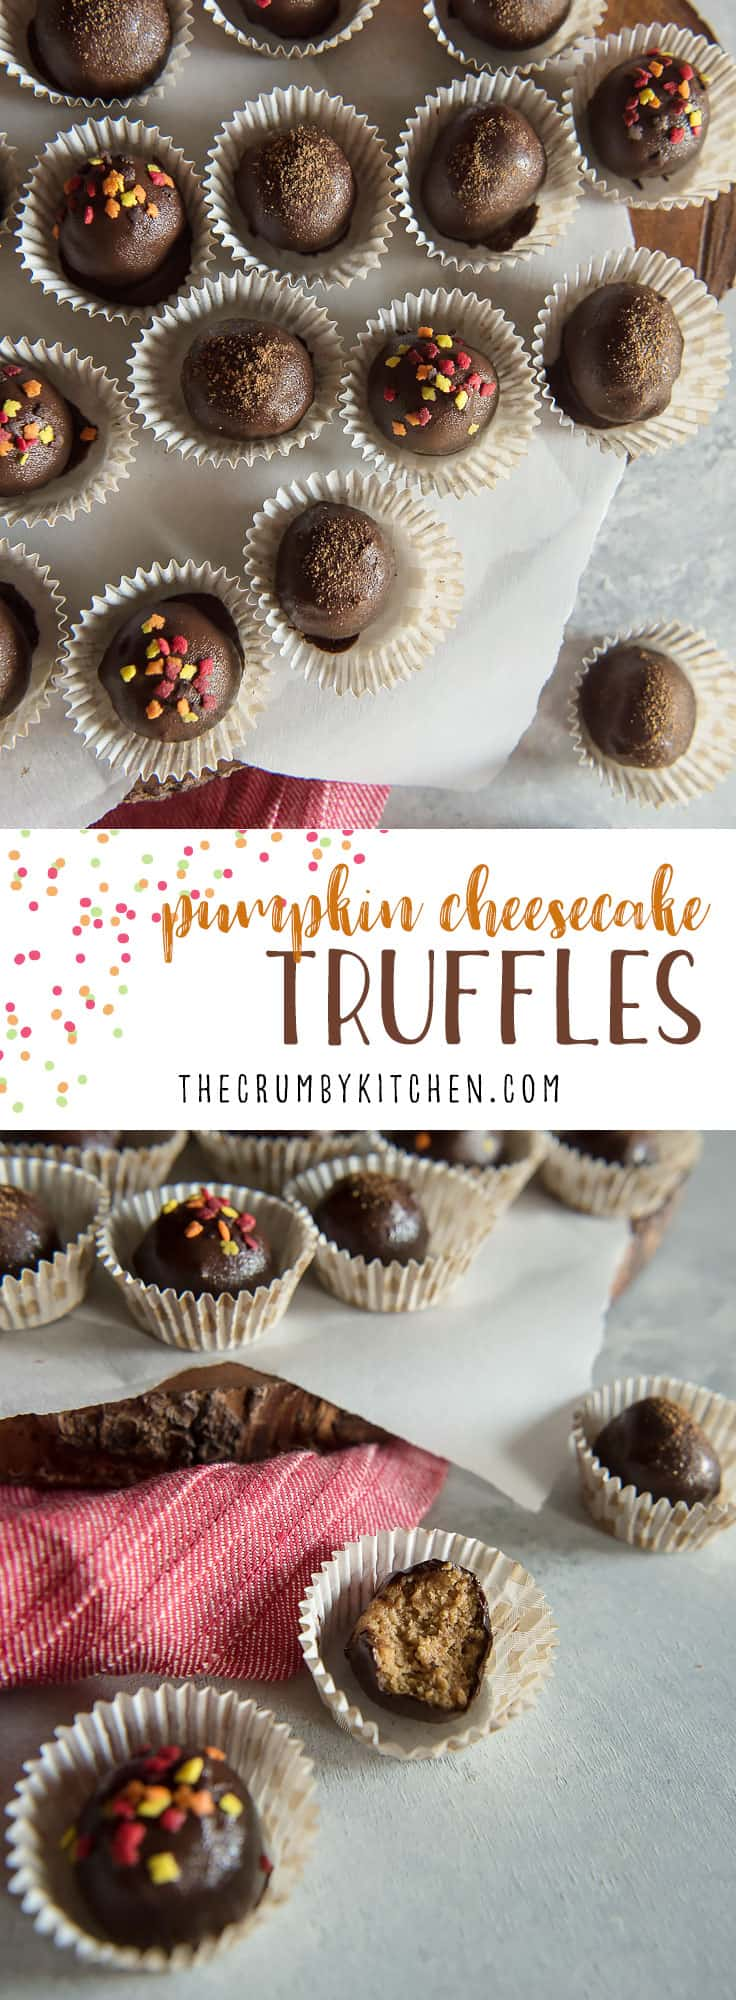 Bite-sized autumn love is found inside these dark chocolate-dipped Pumpkin Cheesecake Truffles, which make perfect party treats!